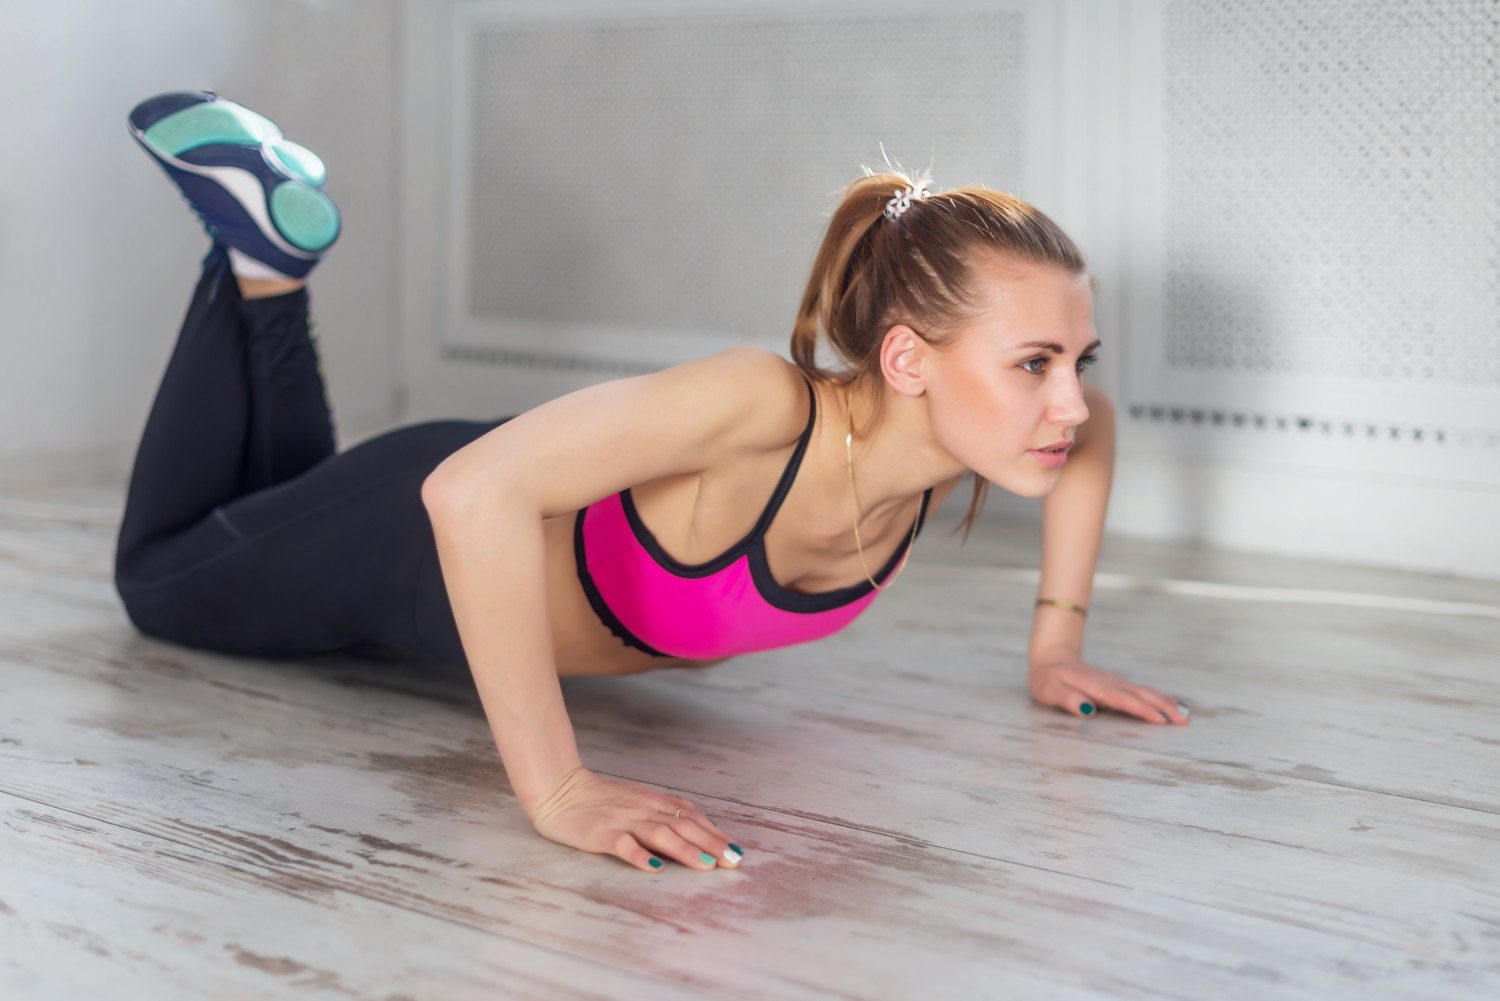 fitness athlete sportive woman sport model girl training crossfit doing push ups at home.